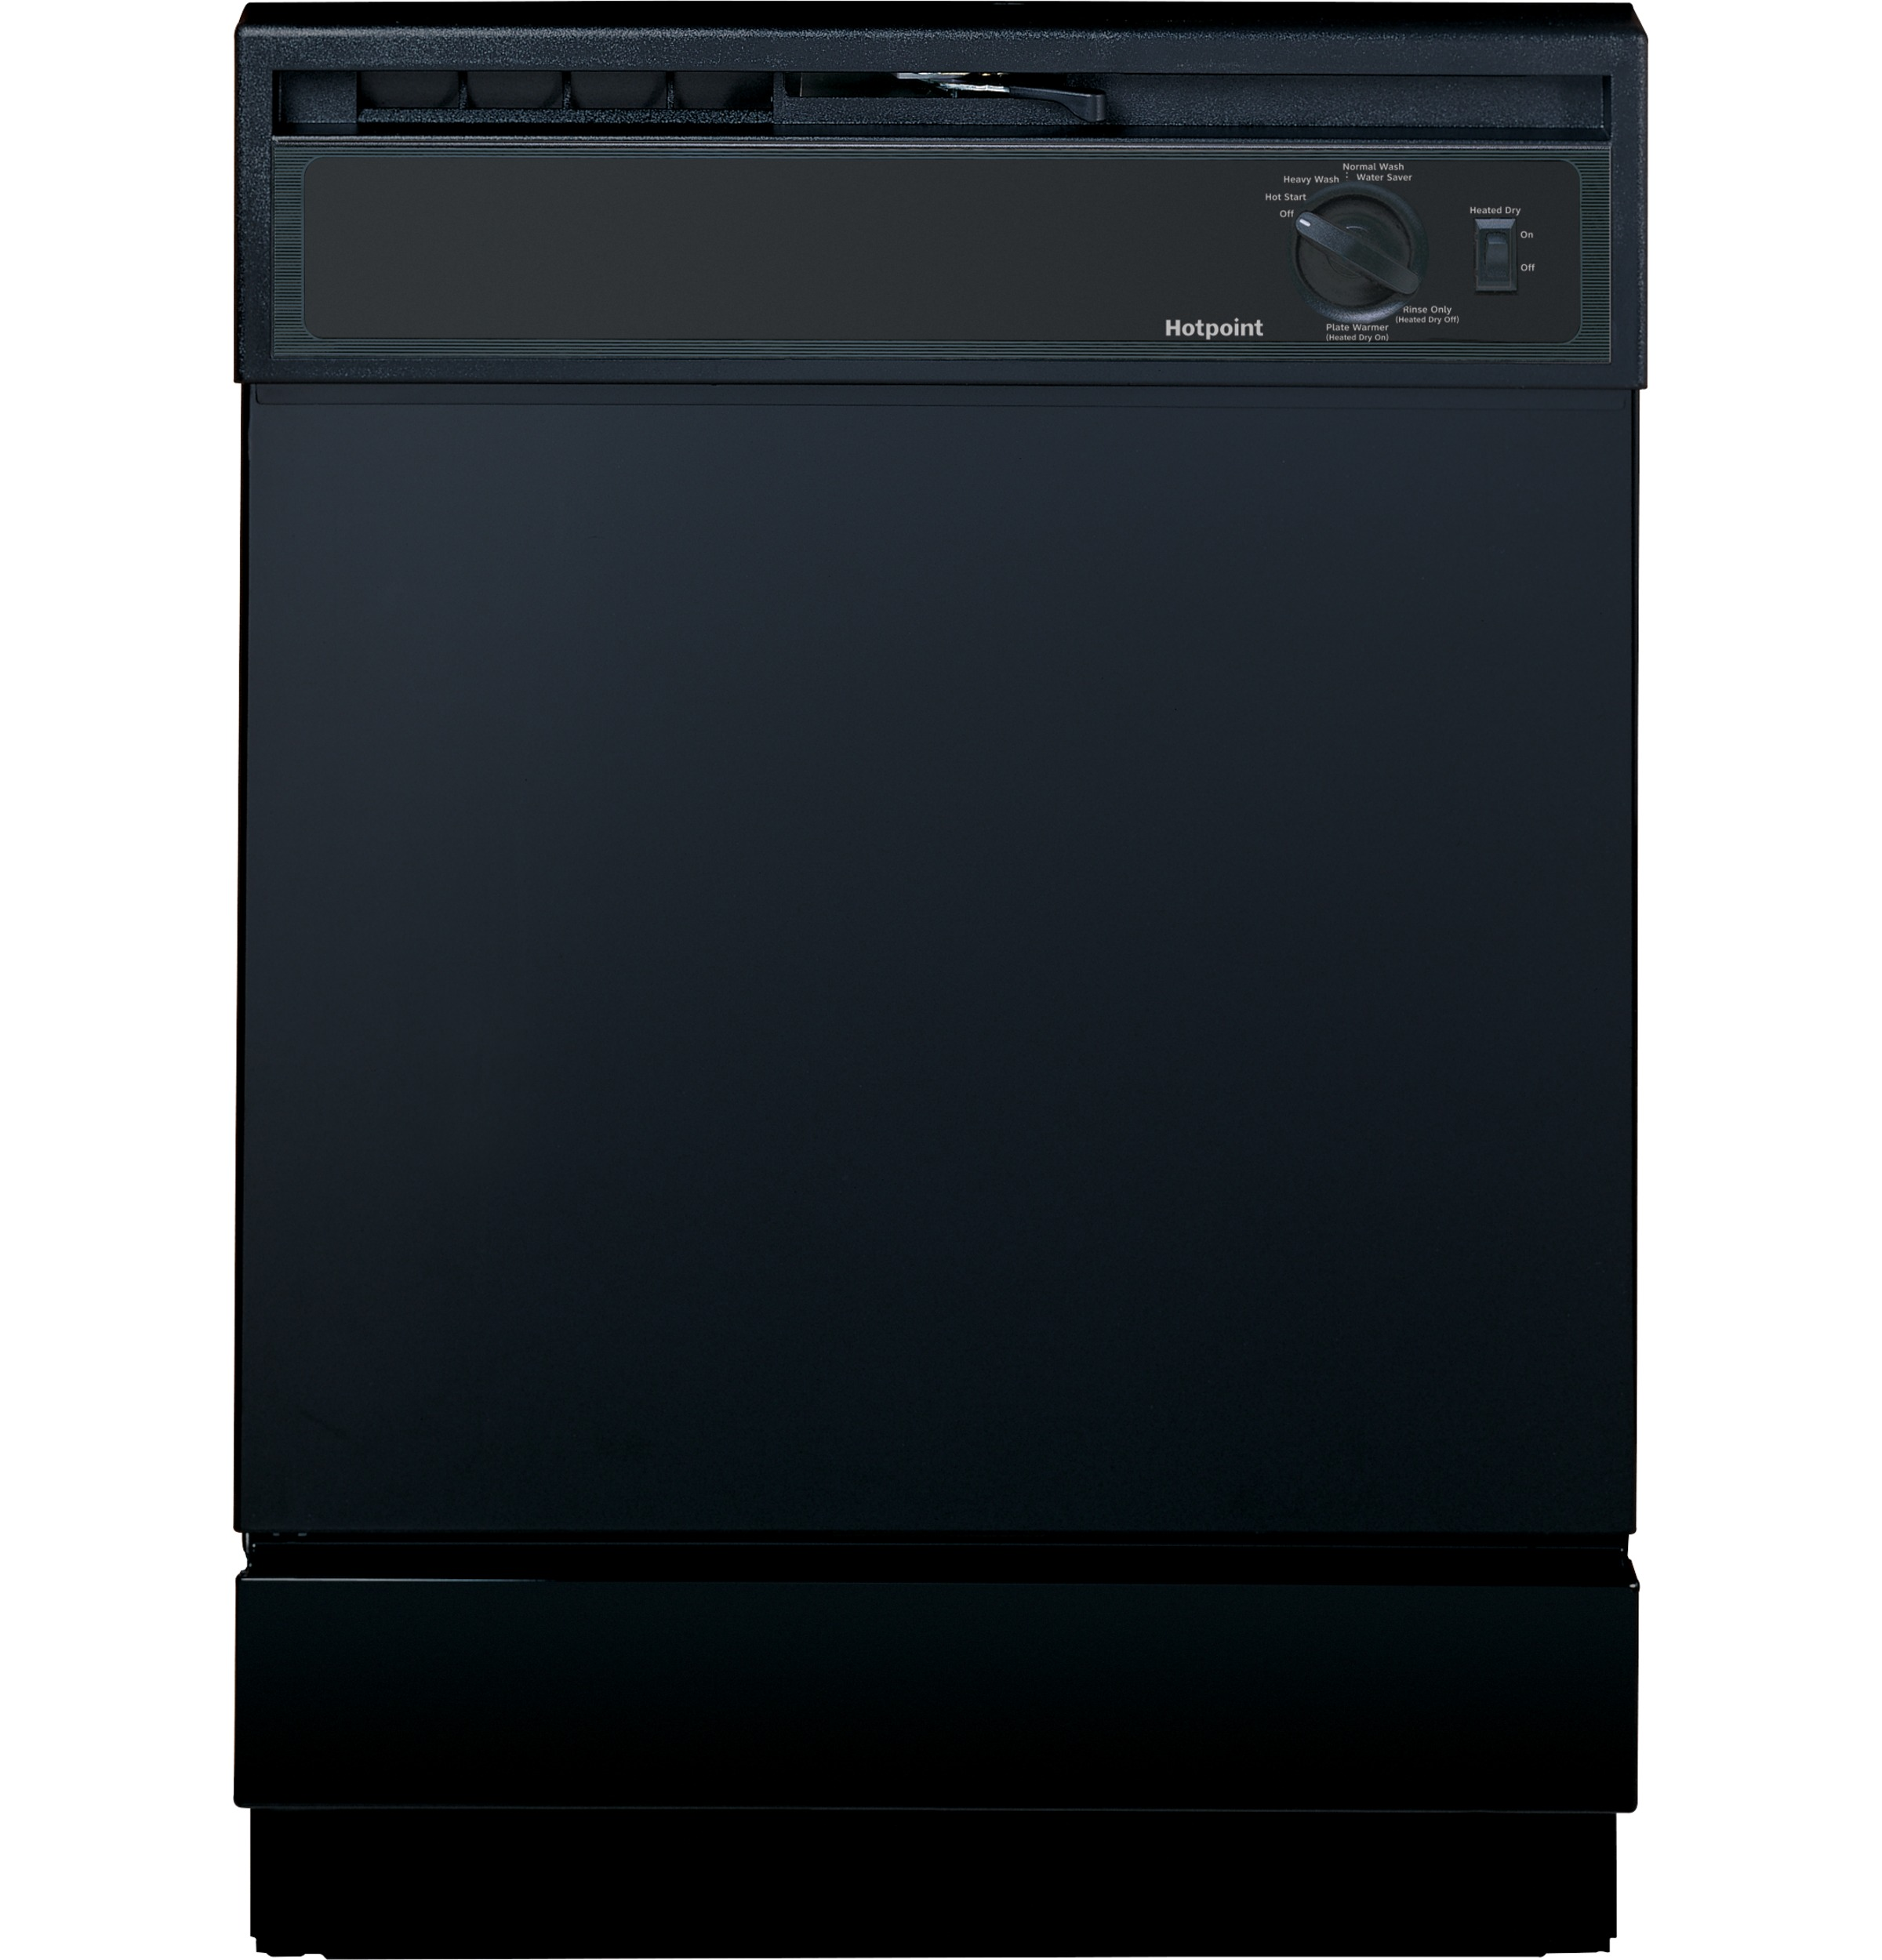 Model: HDA2100HBB | Hotpoint Hotpoint® Built-In Dishwasher